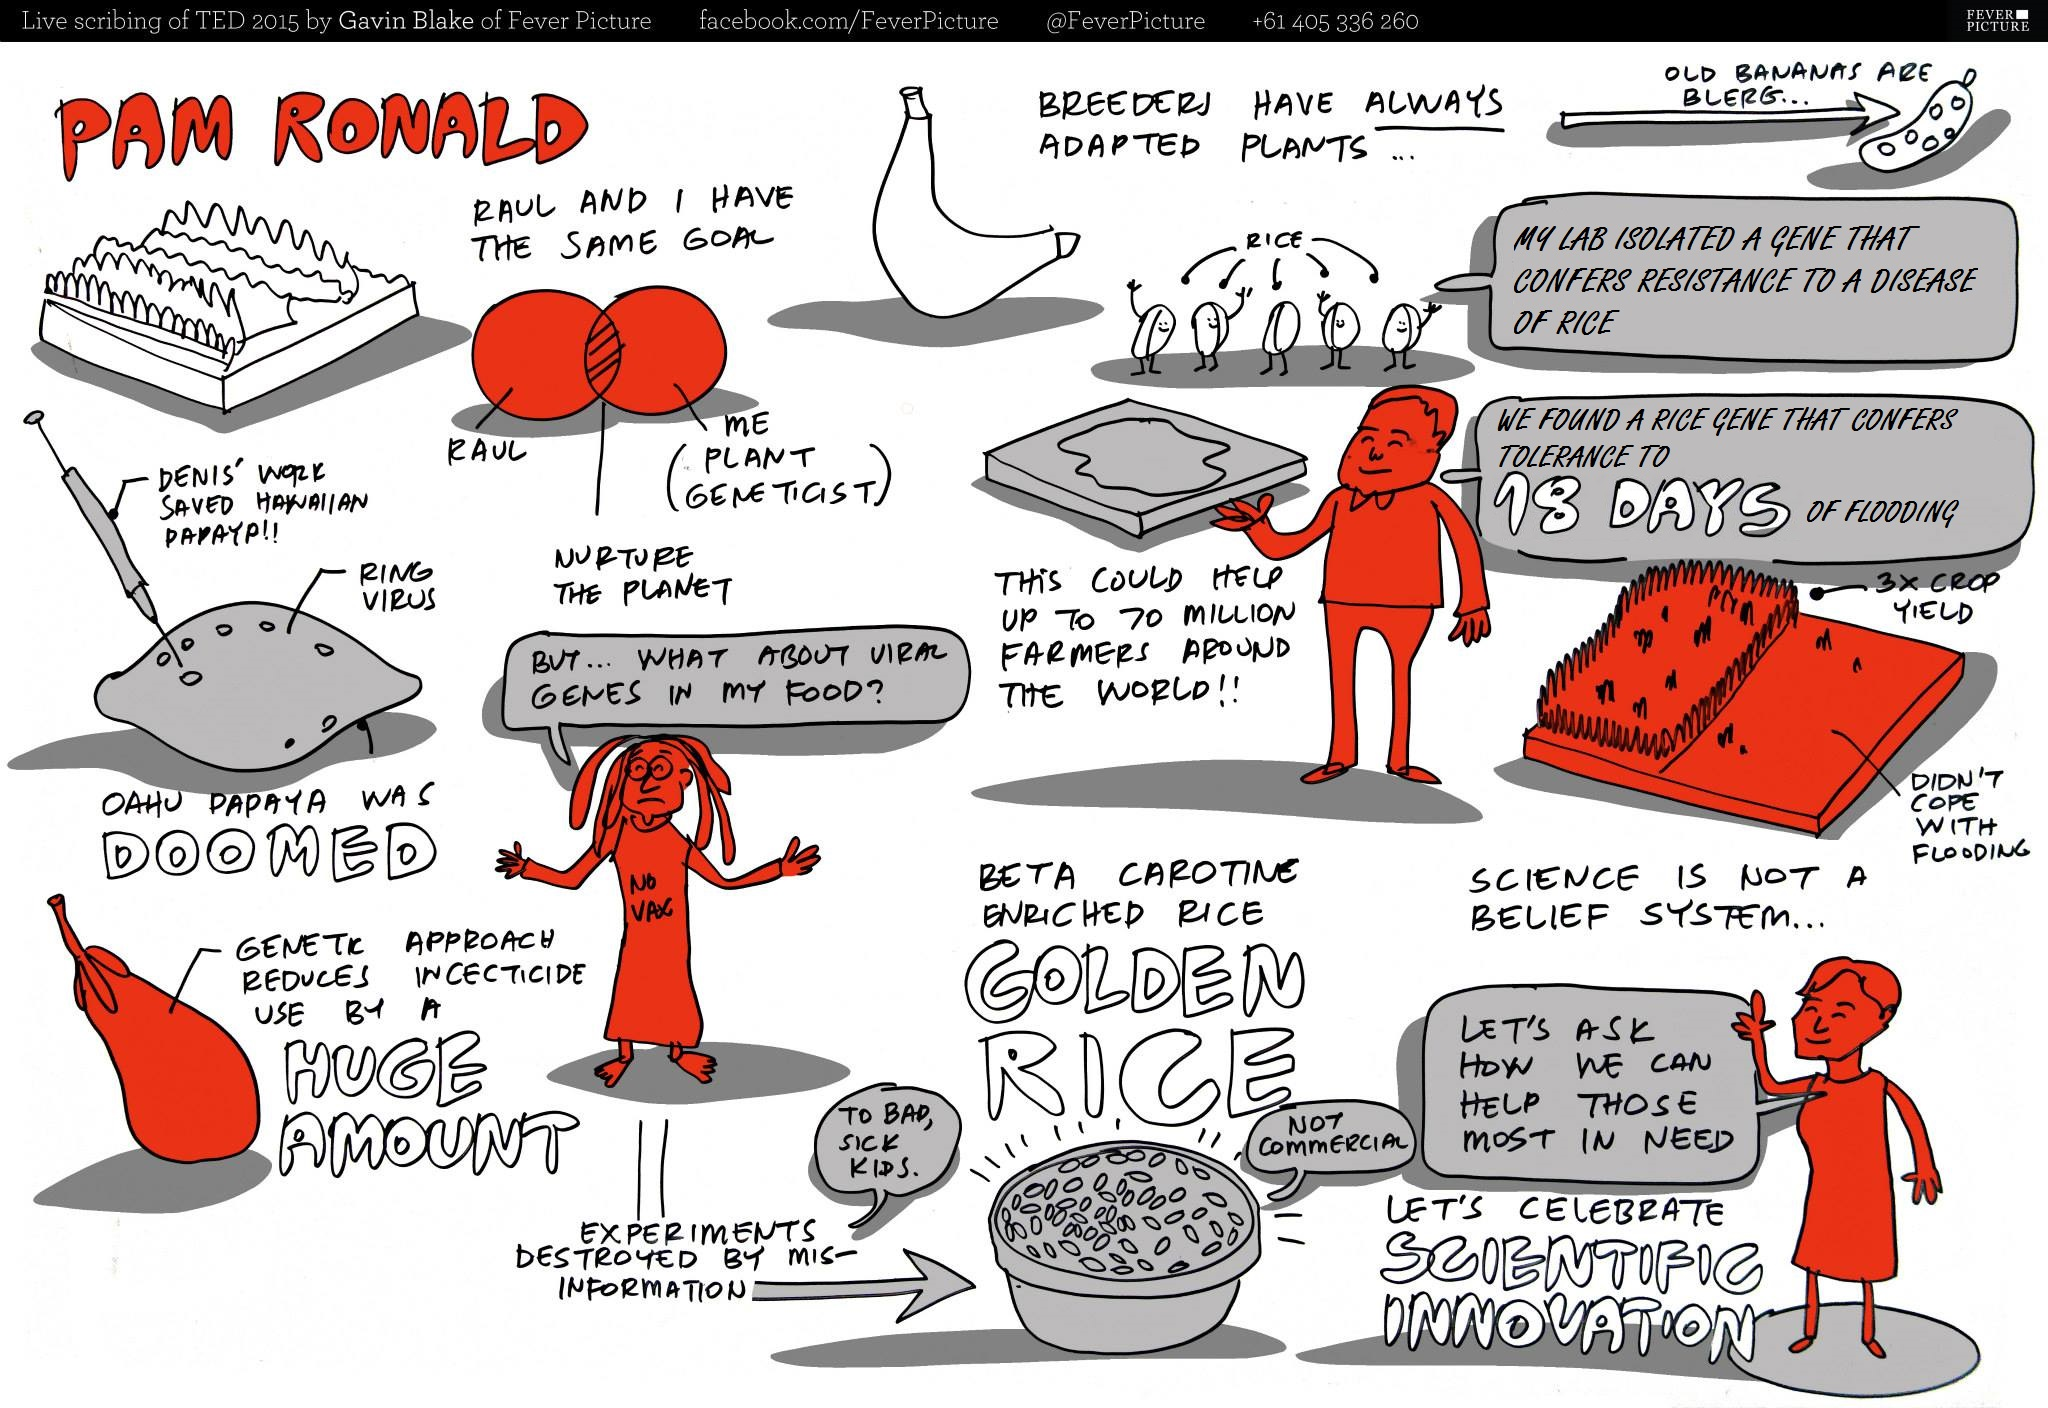 Comic depicting the main ideas from Dr. Pamela Ronald's 2015 TED talk by Gavin Blake, FeverPicture